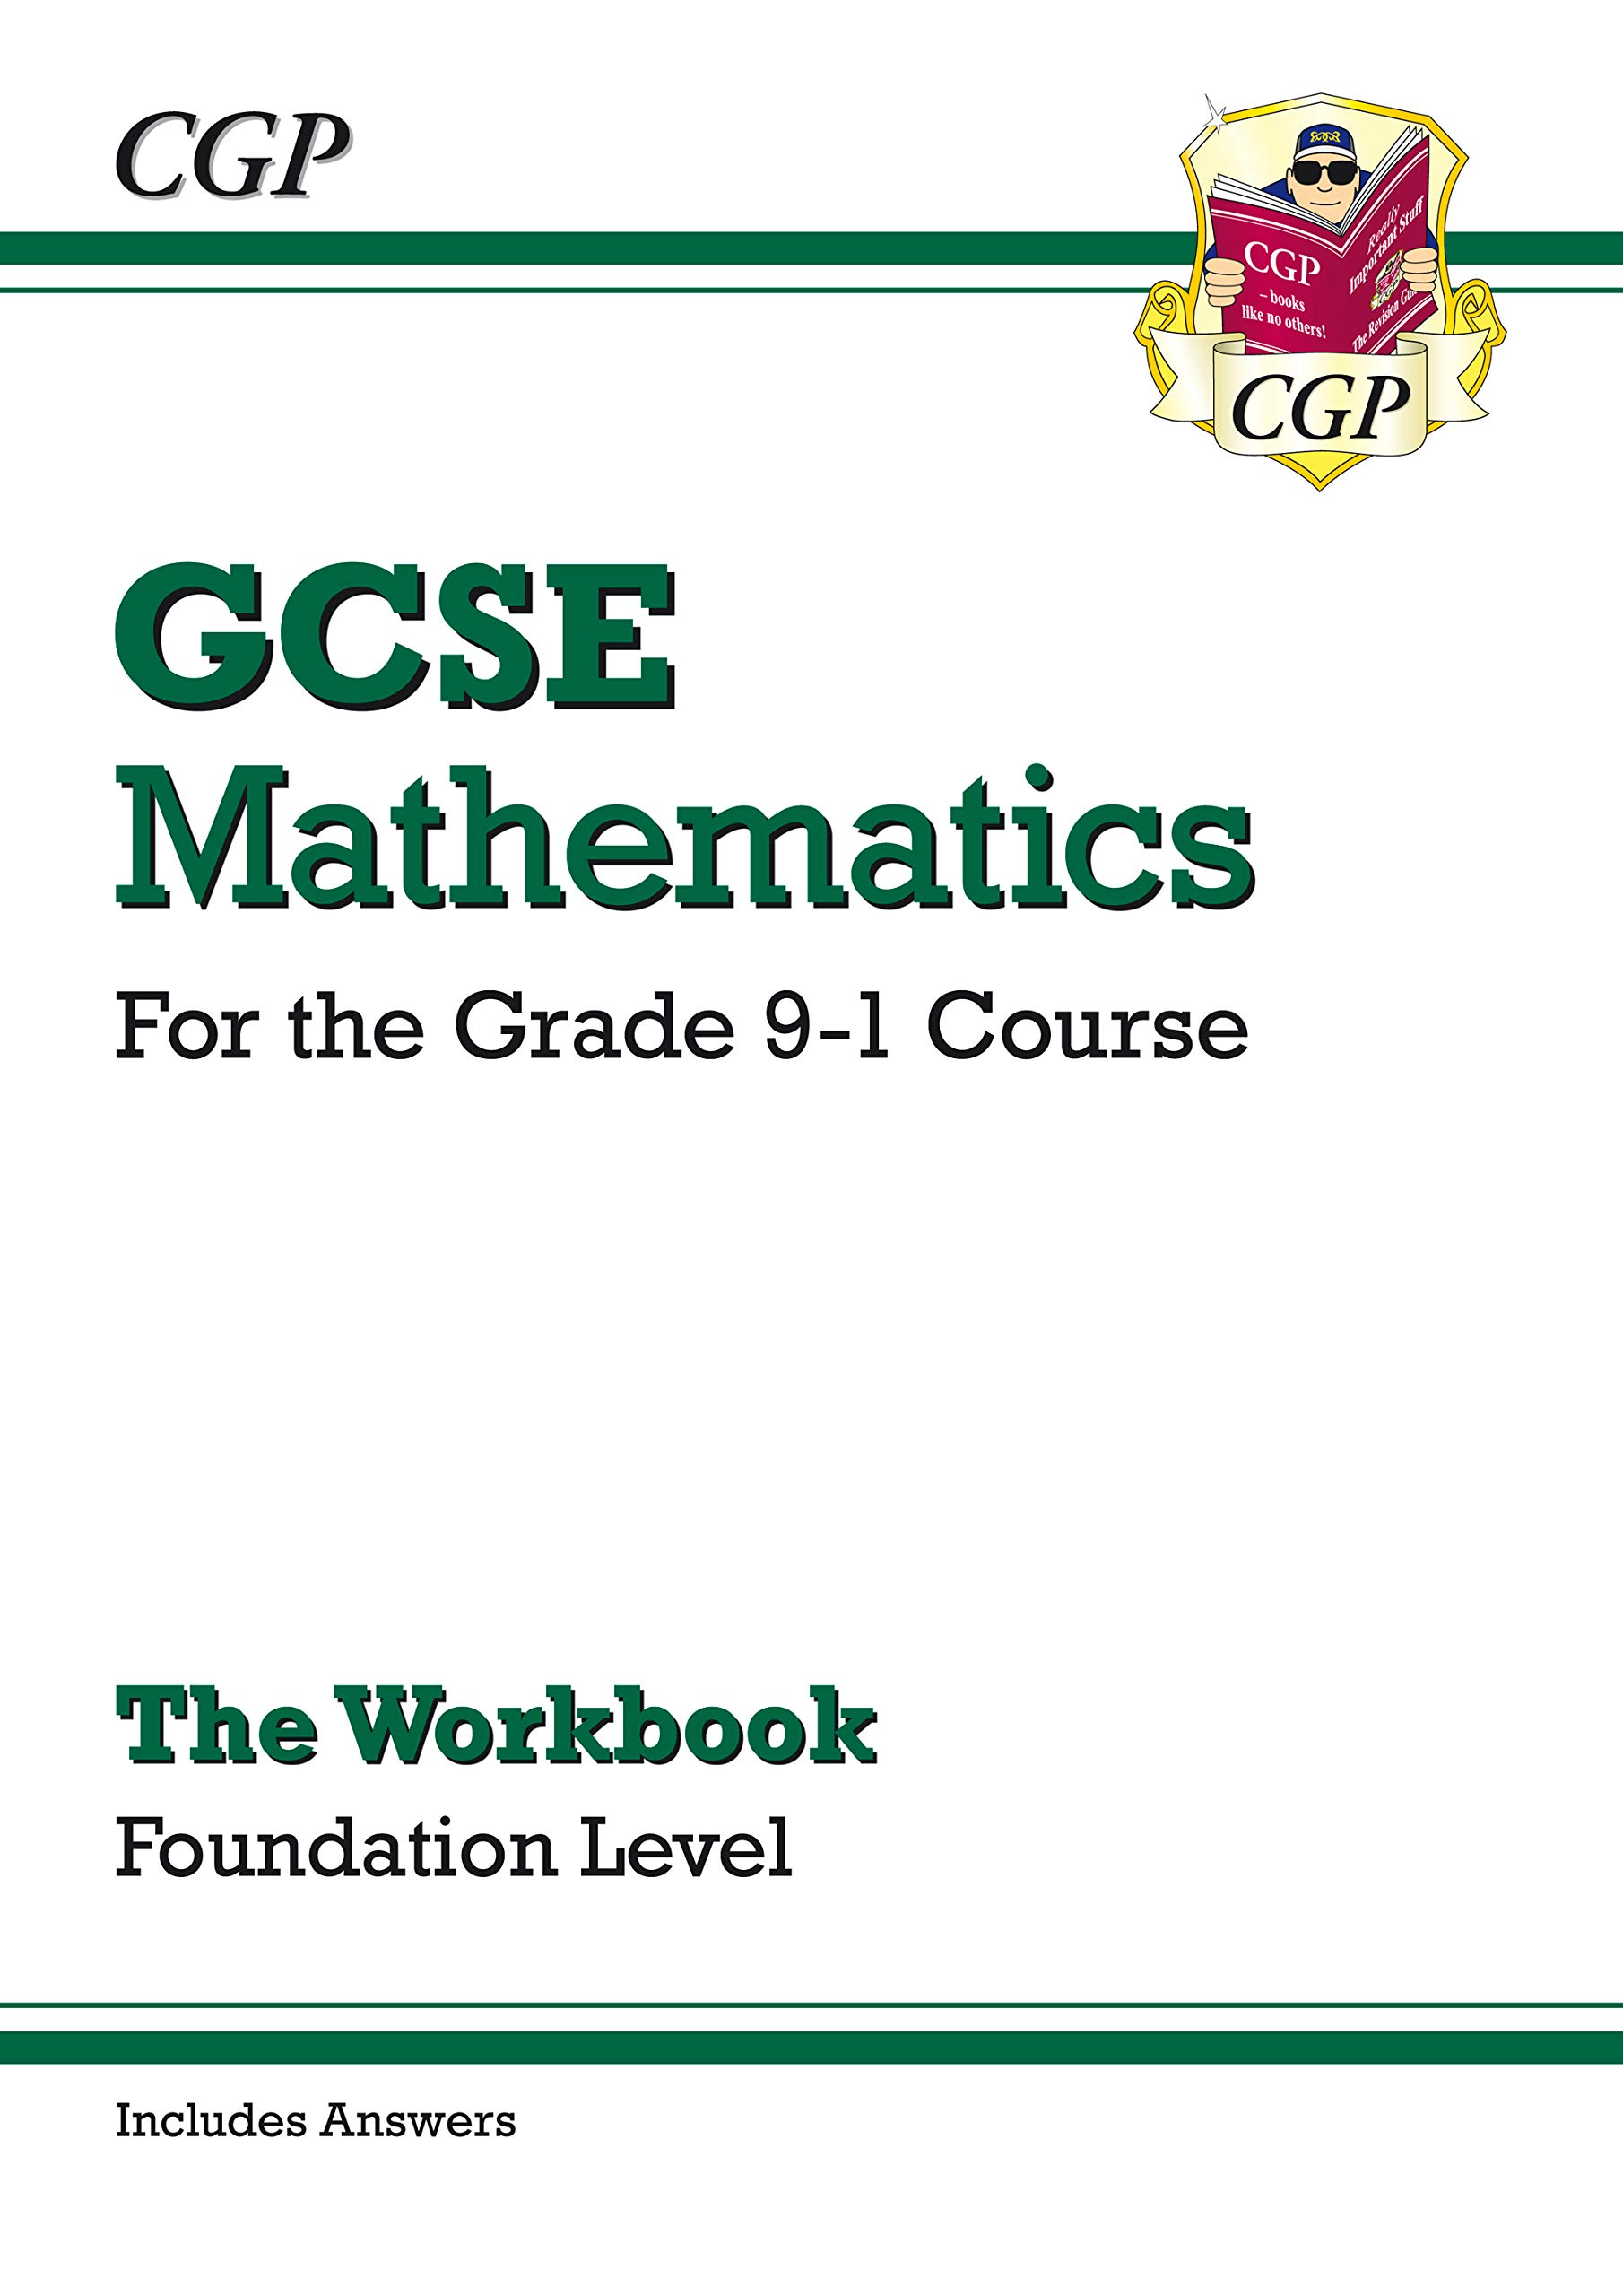 GCSE Maths Workbook: Foundation - for the Grade 9-1 Course